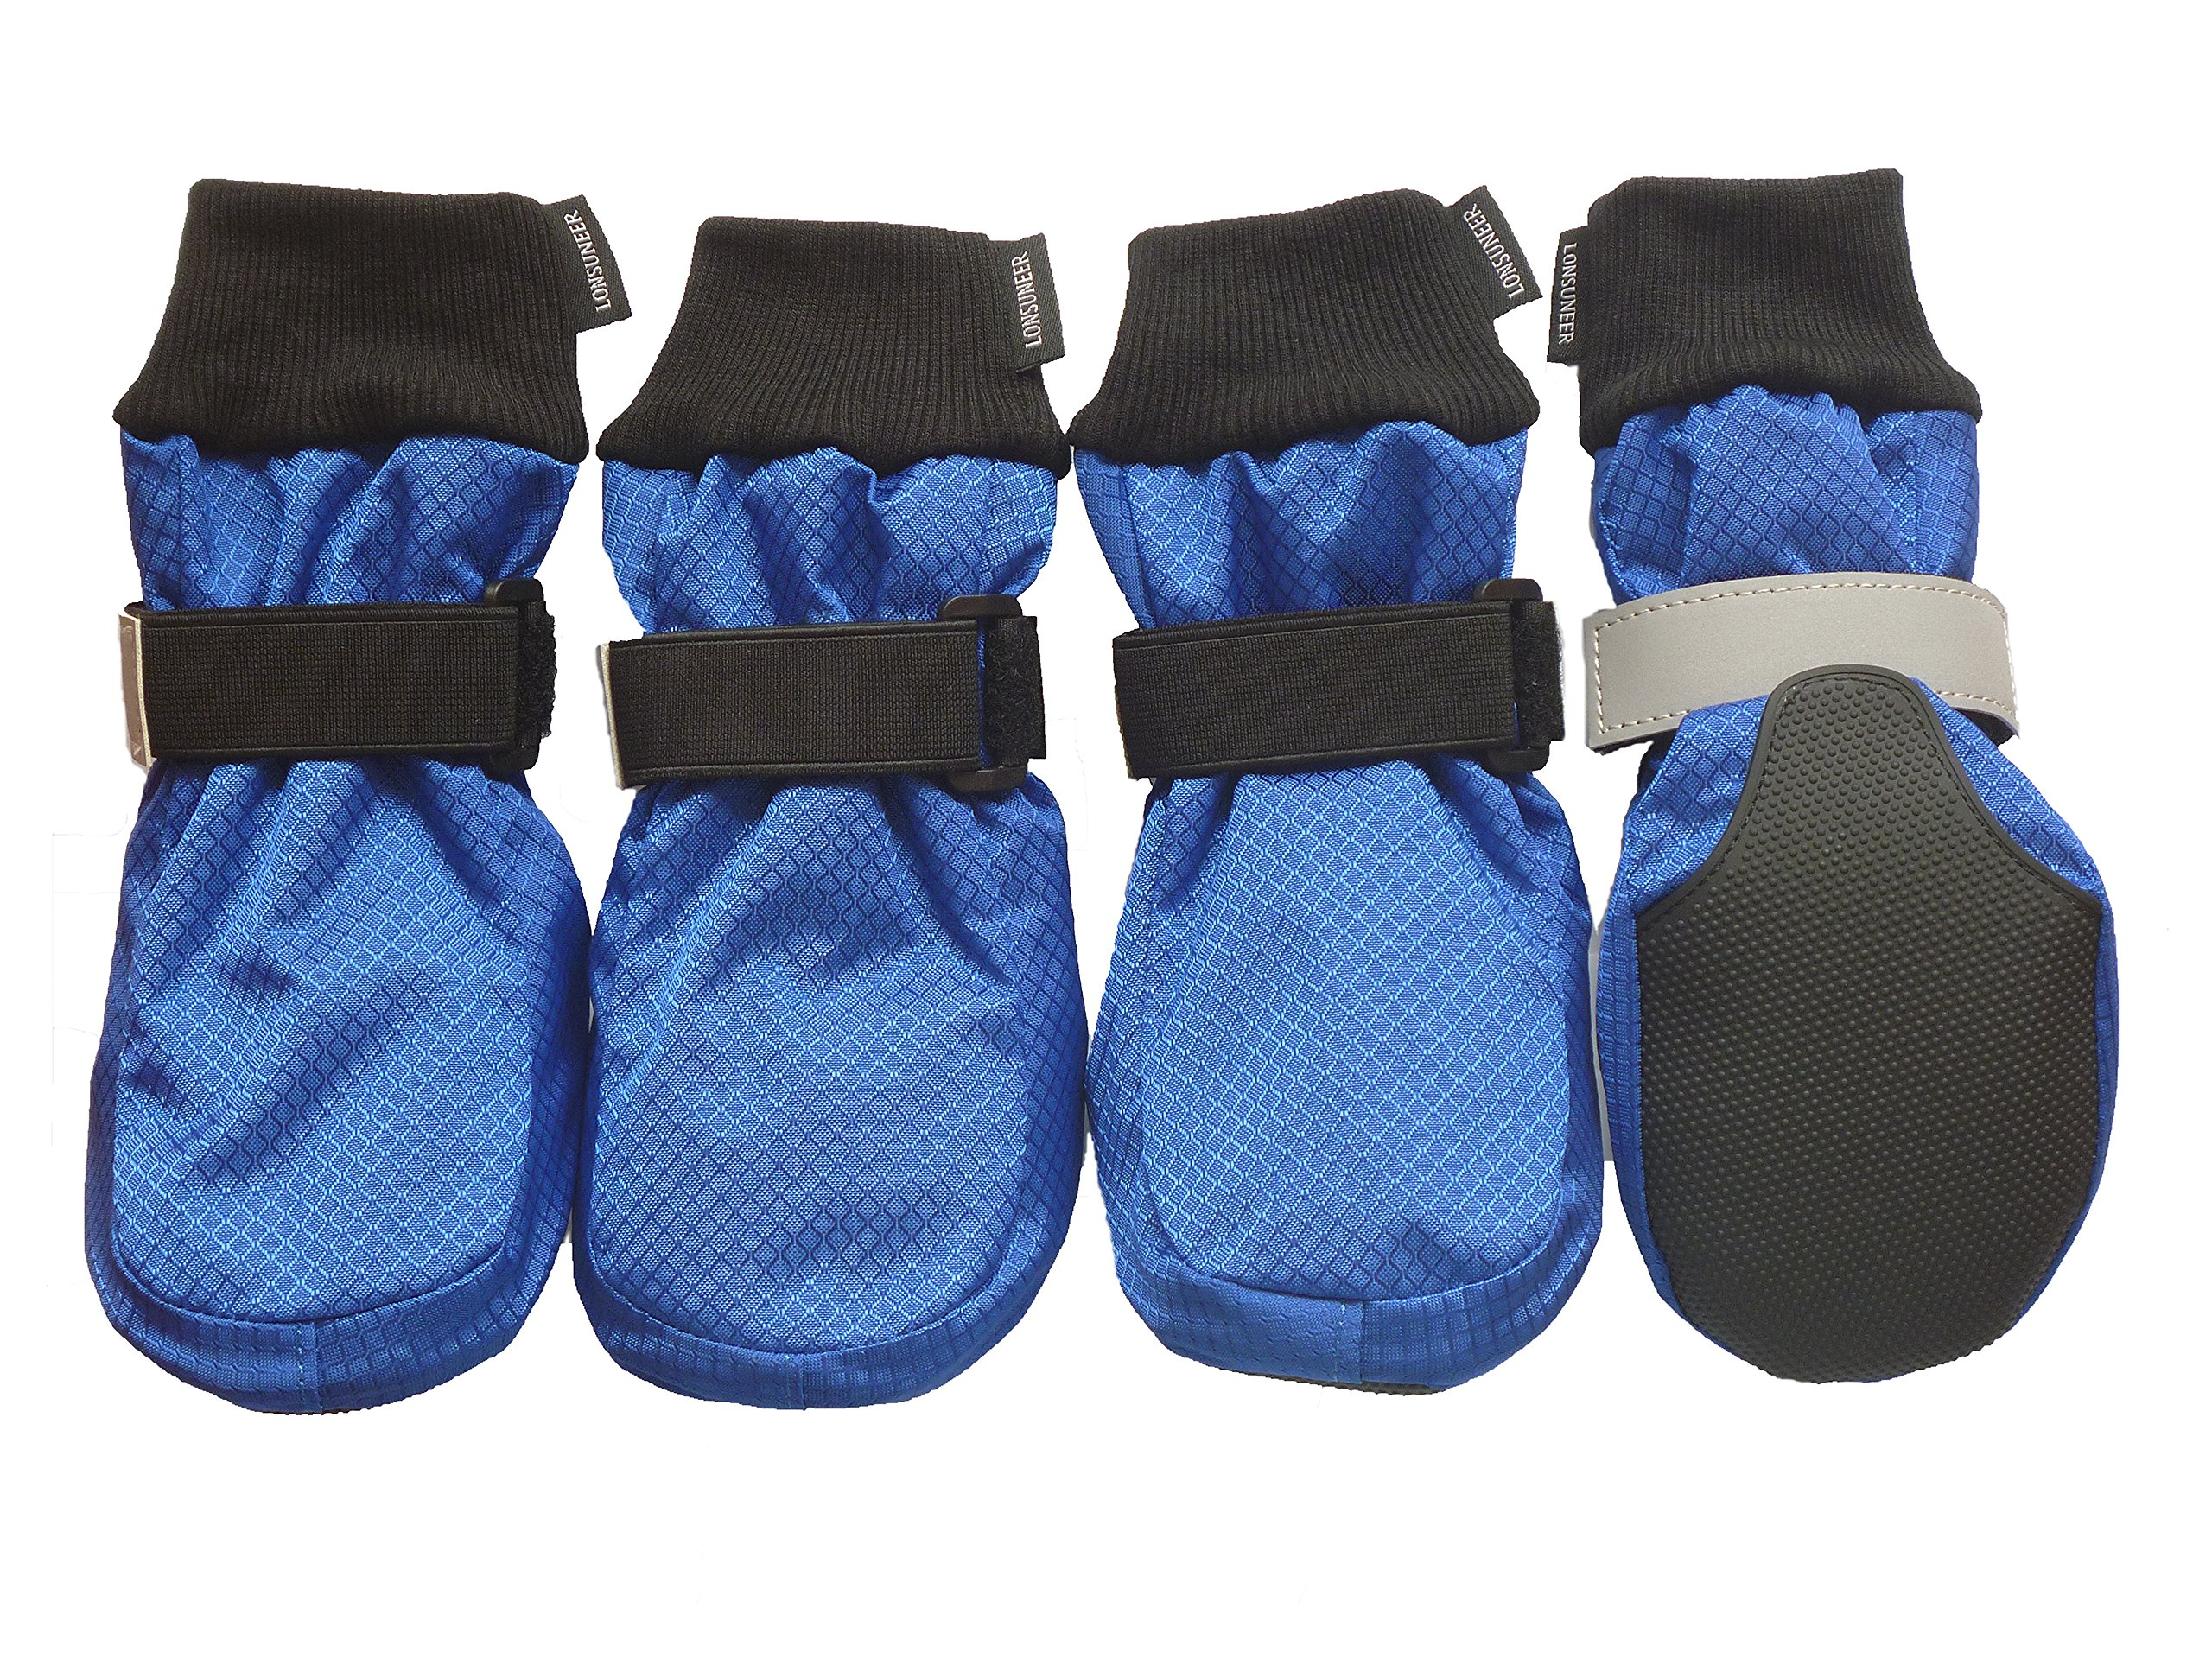 LONSUNEER Winter Paw Protector Dog Boots Waterproof Soft Sole and Nonslip Set of 4 Color Blue Size XL by LONSUNEER